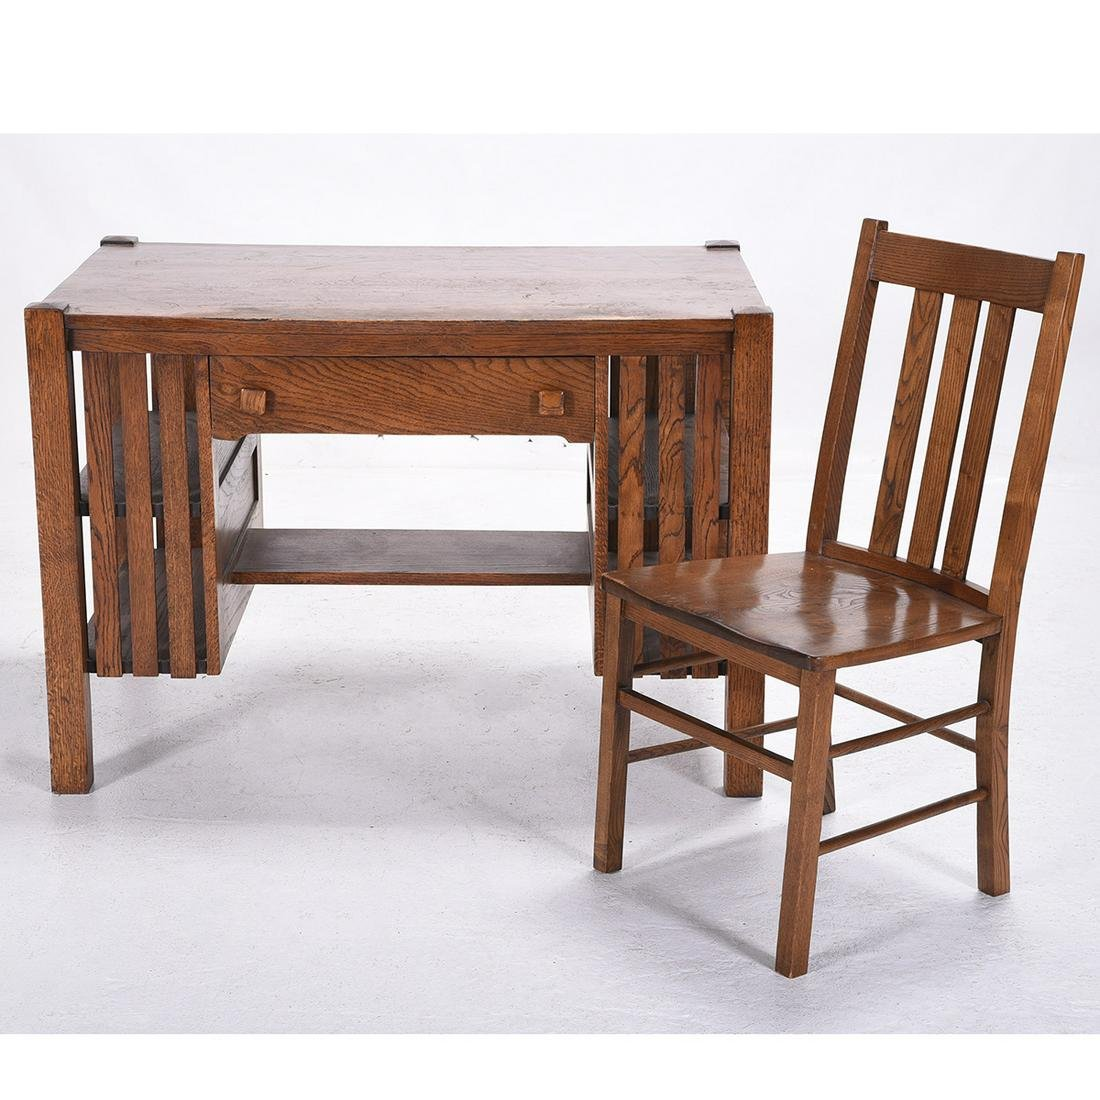 Stickley Style Mission Oak Desk and Chair.